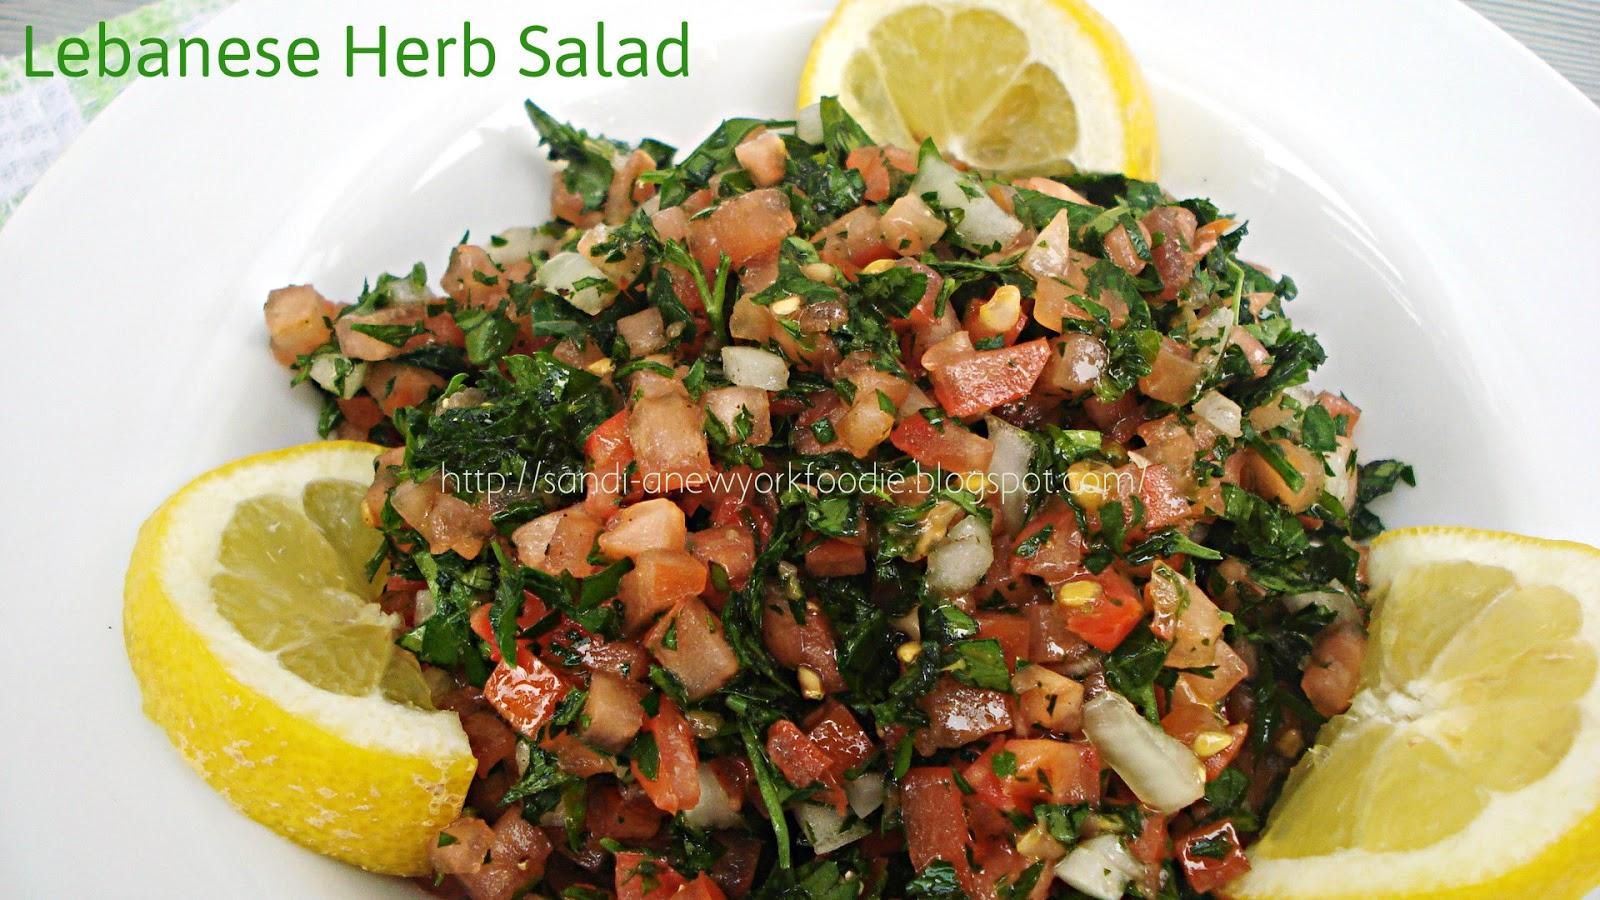 Lebanese Herb Salad - A New York Foodie | A New York Foodie